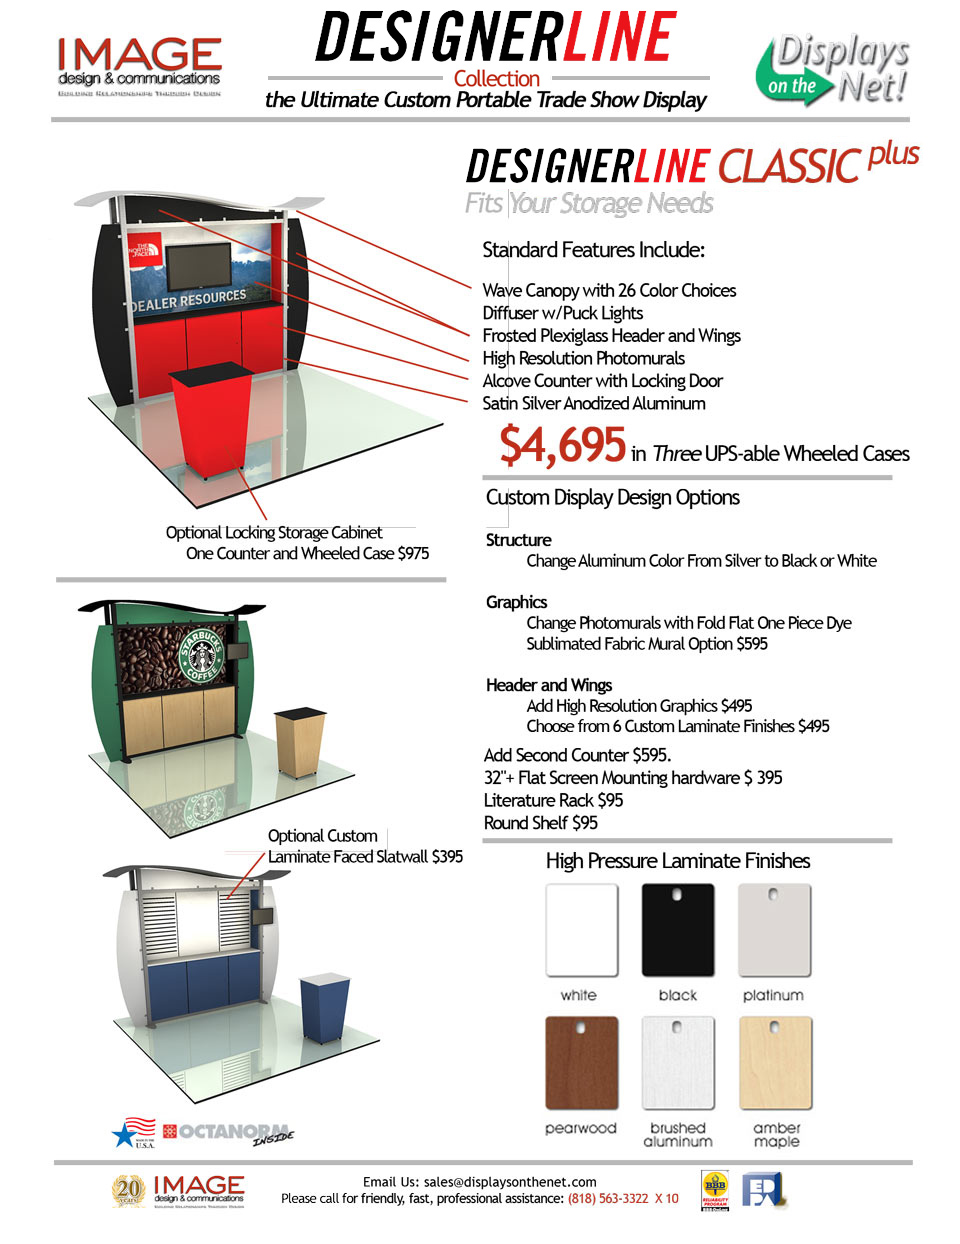 DesignerLine Classic Plus